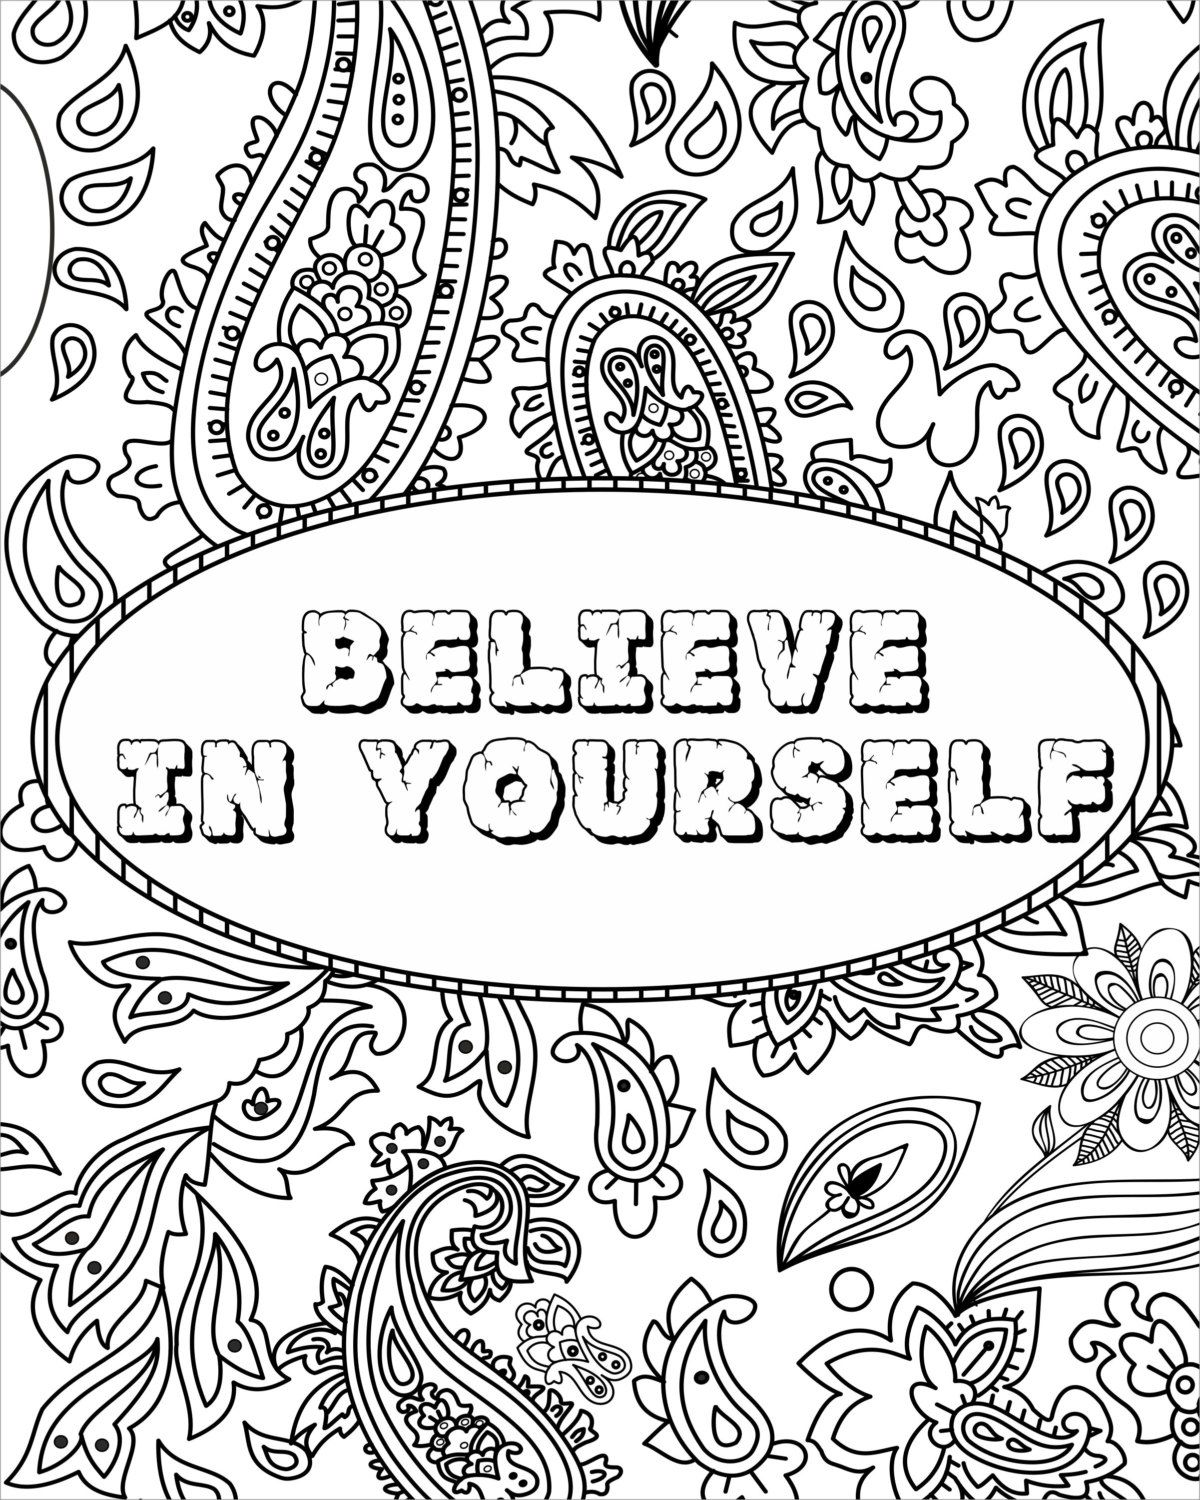 kids quote coloring pages family quote coloring pages doodle art alley pages quote kids coloring